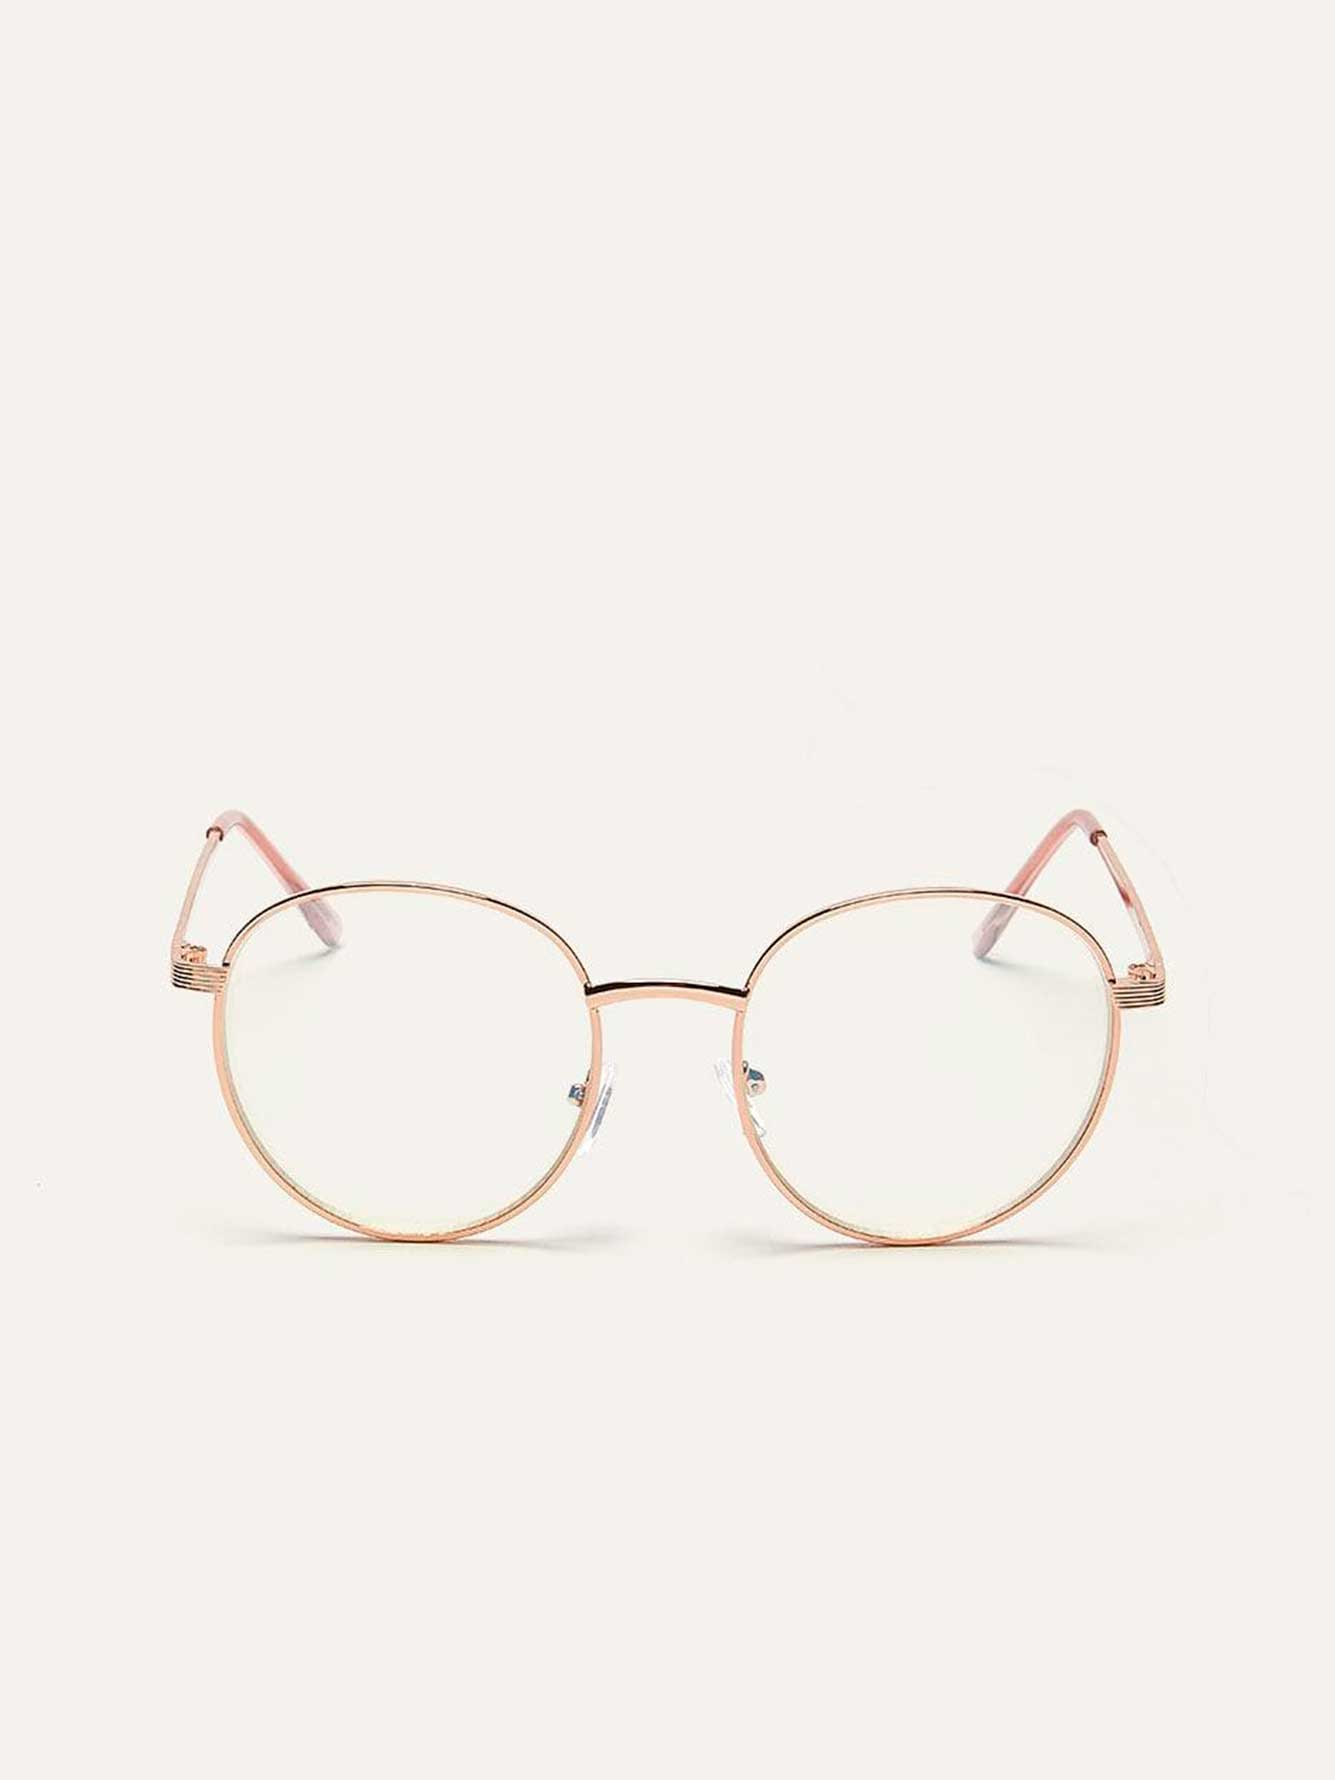 Blue Lens Glasses with Metallic Frame